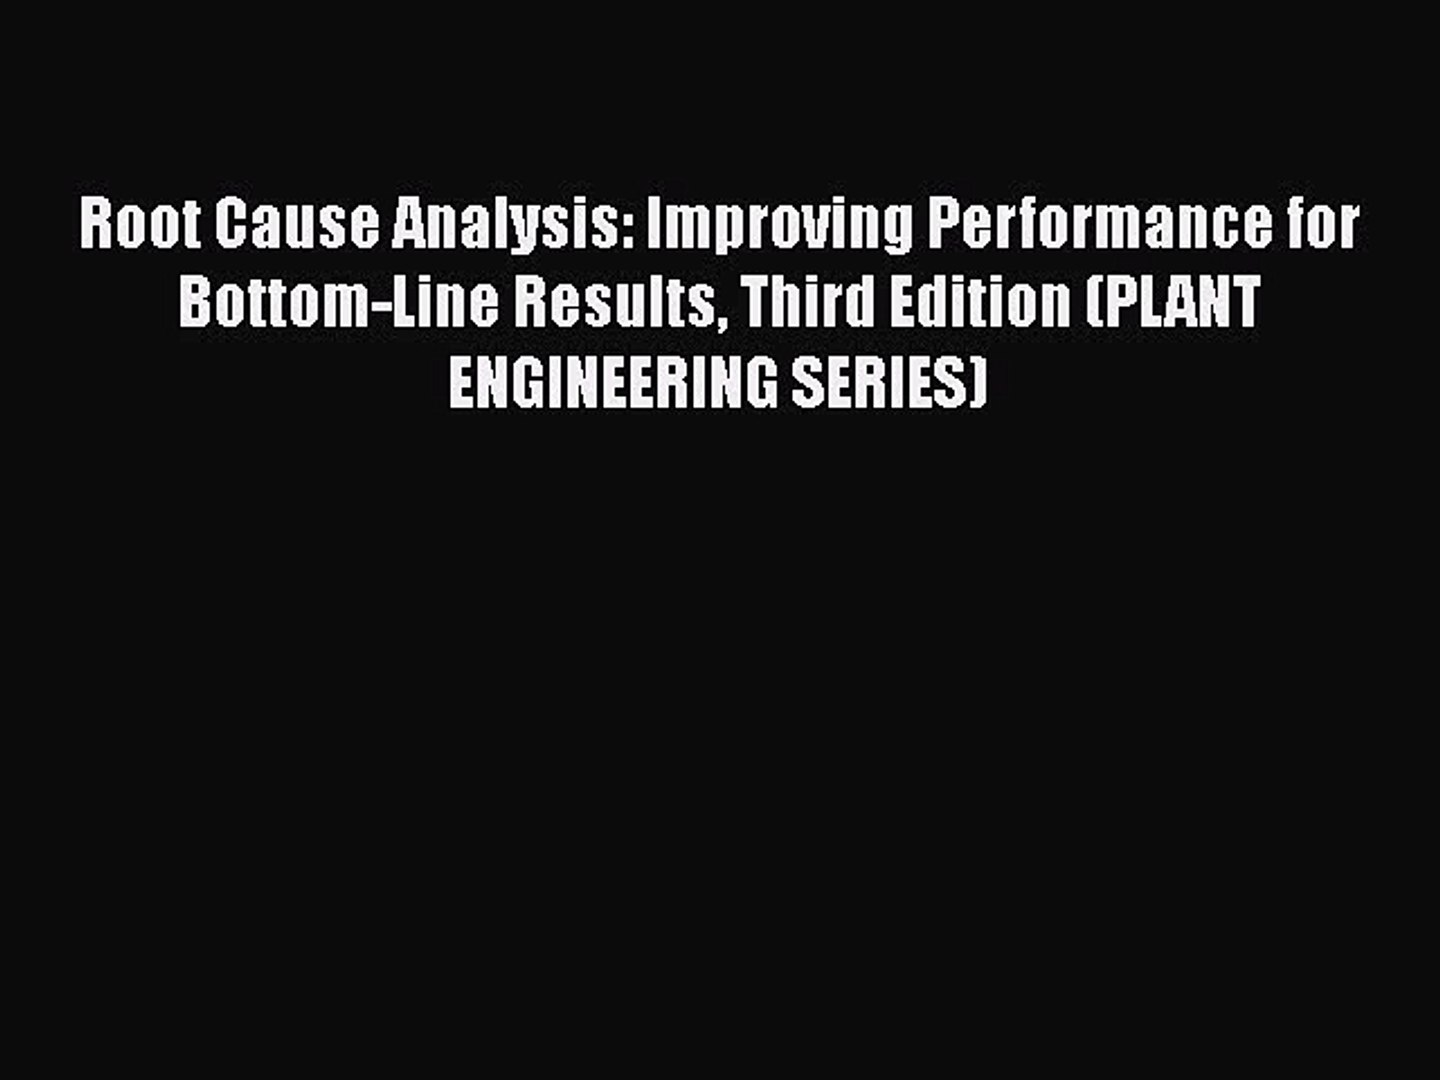 Read Root Cause Analysis: Improving Performance for Bottom-Line Results Third Edition (PLANT